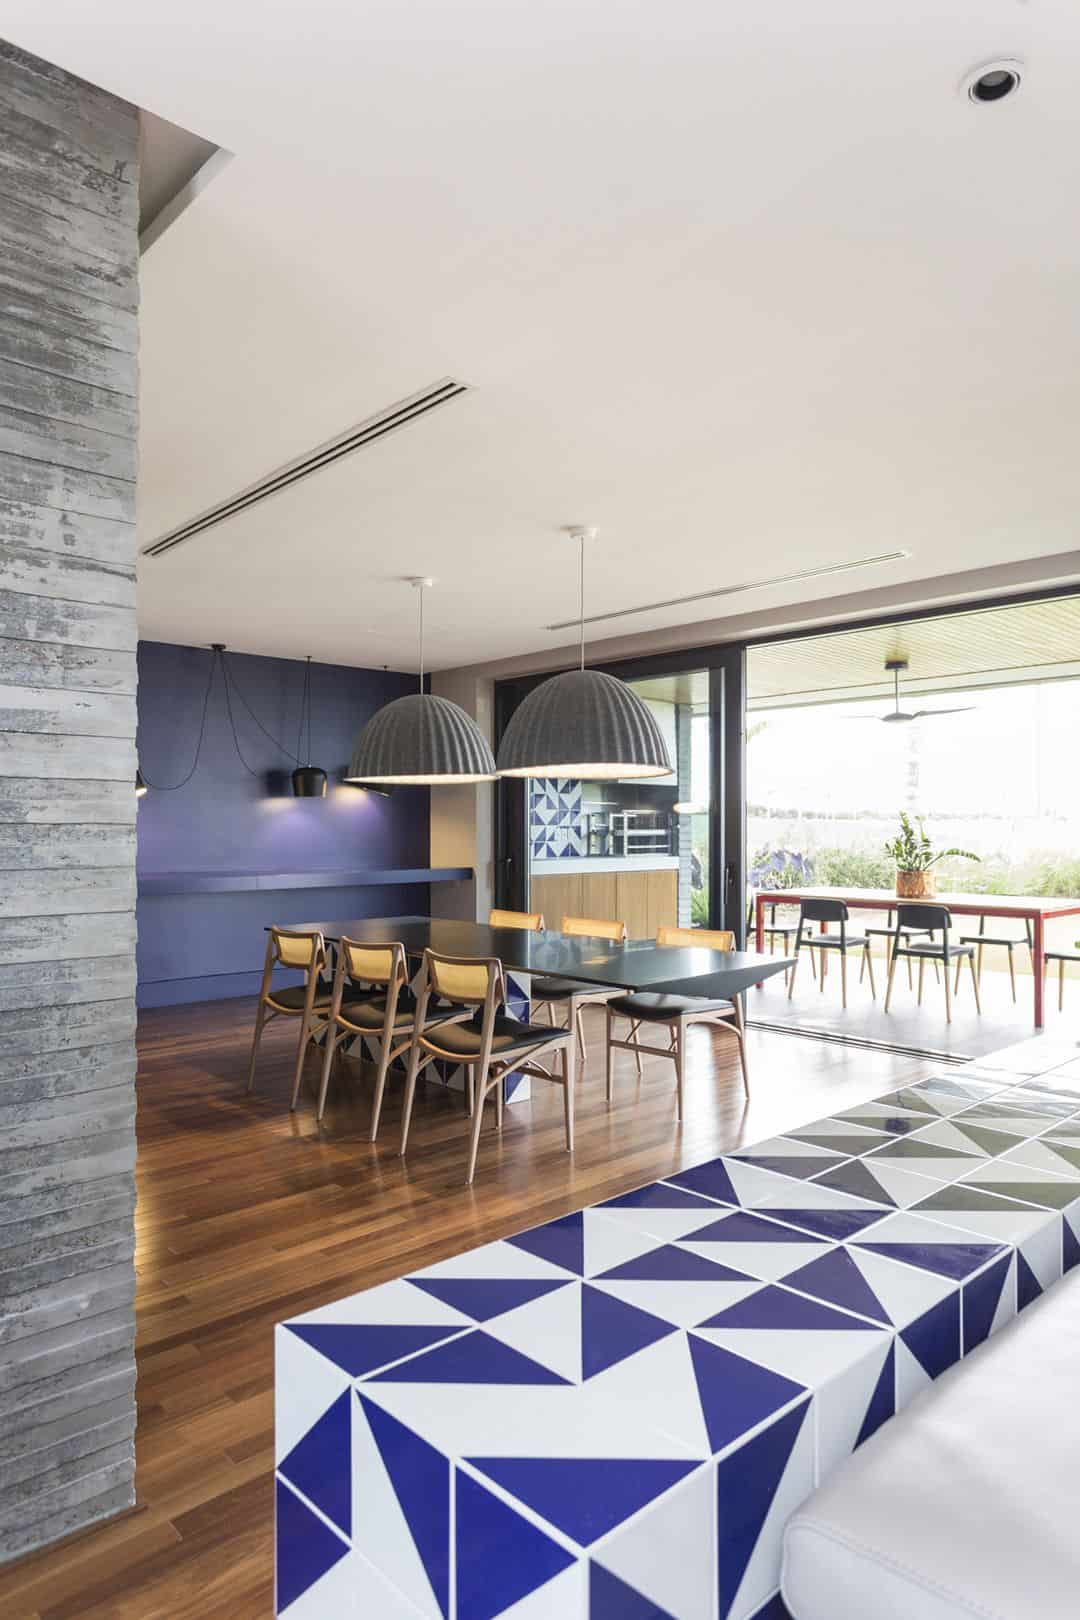 Casa R & L An Interior That Reflects Welcoming Personalities And Minimalist Aesthetics 18